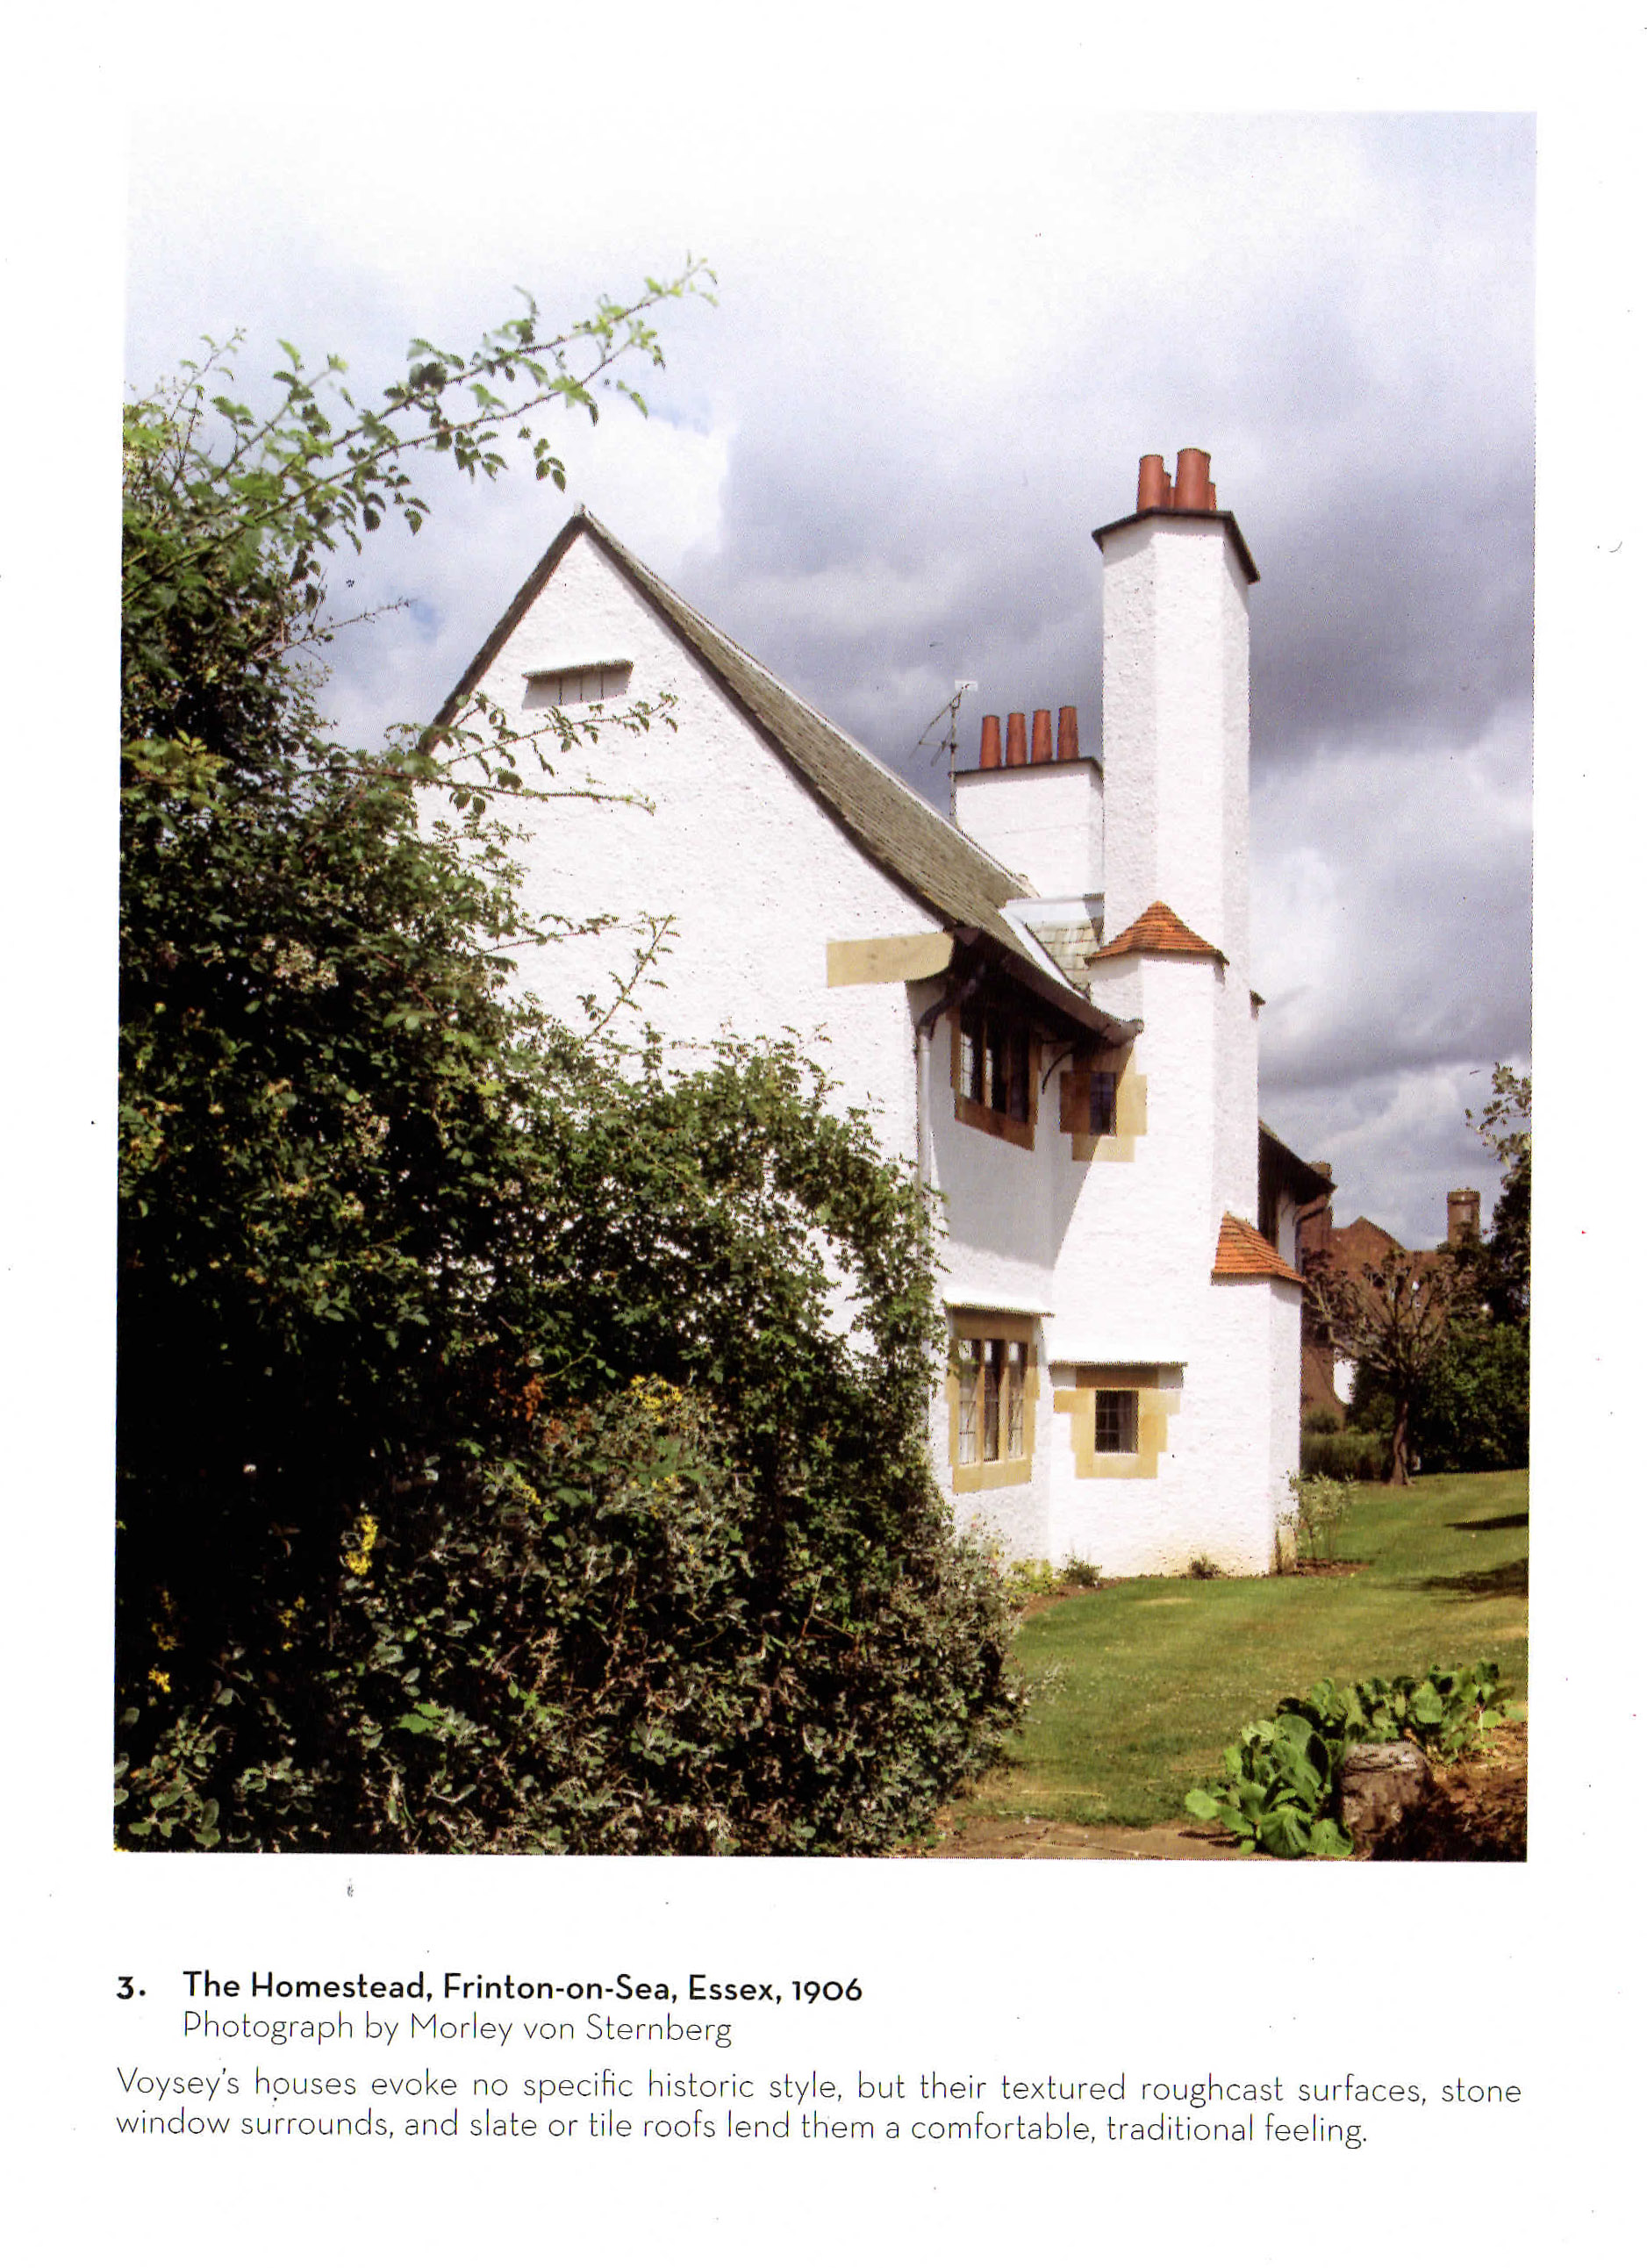 Voysey